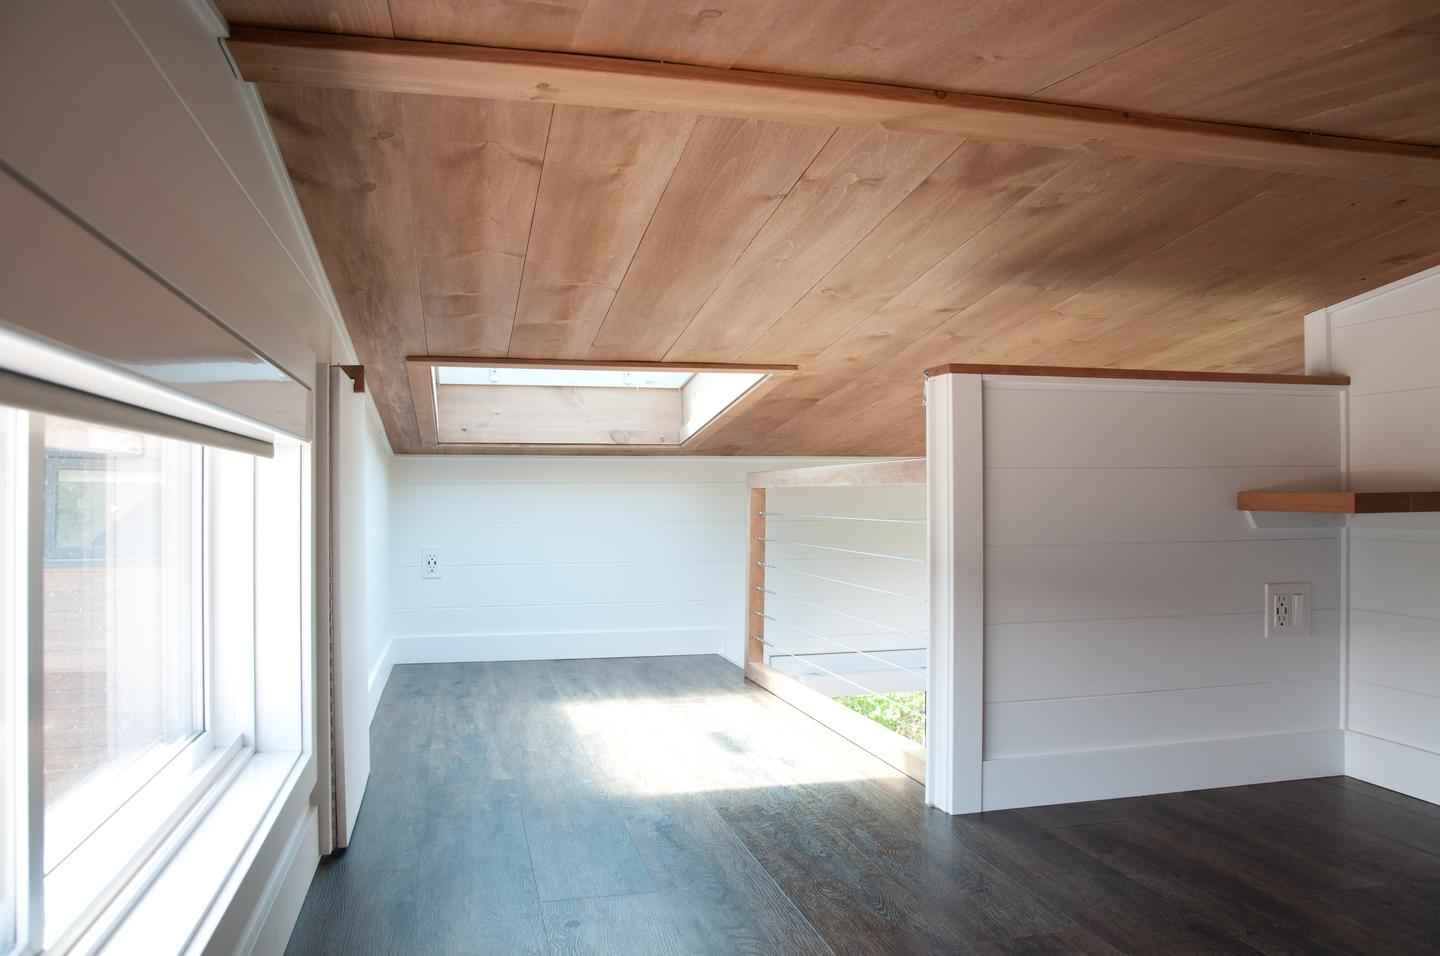 The Noyer XL V2's upstairs bedroom is a standard tiny house-style loft bedroom, and includes a skylight